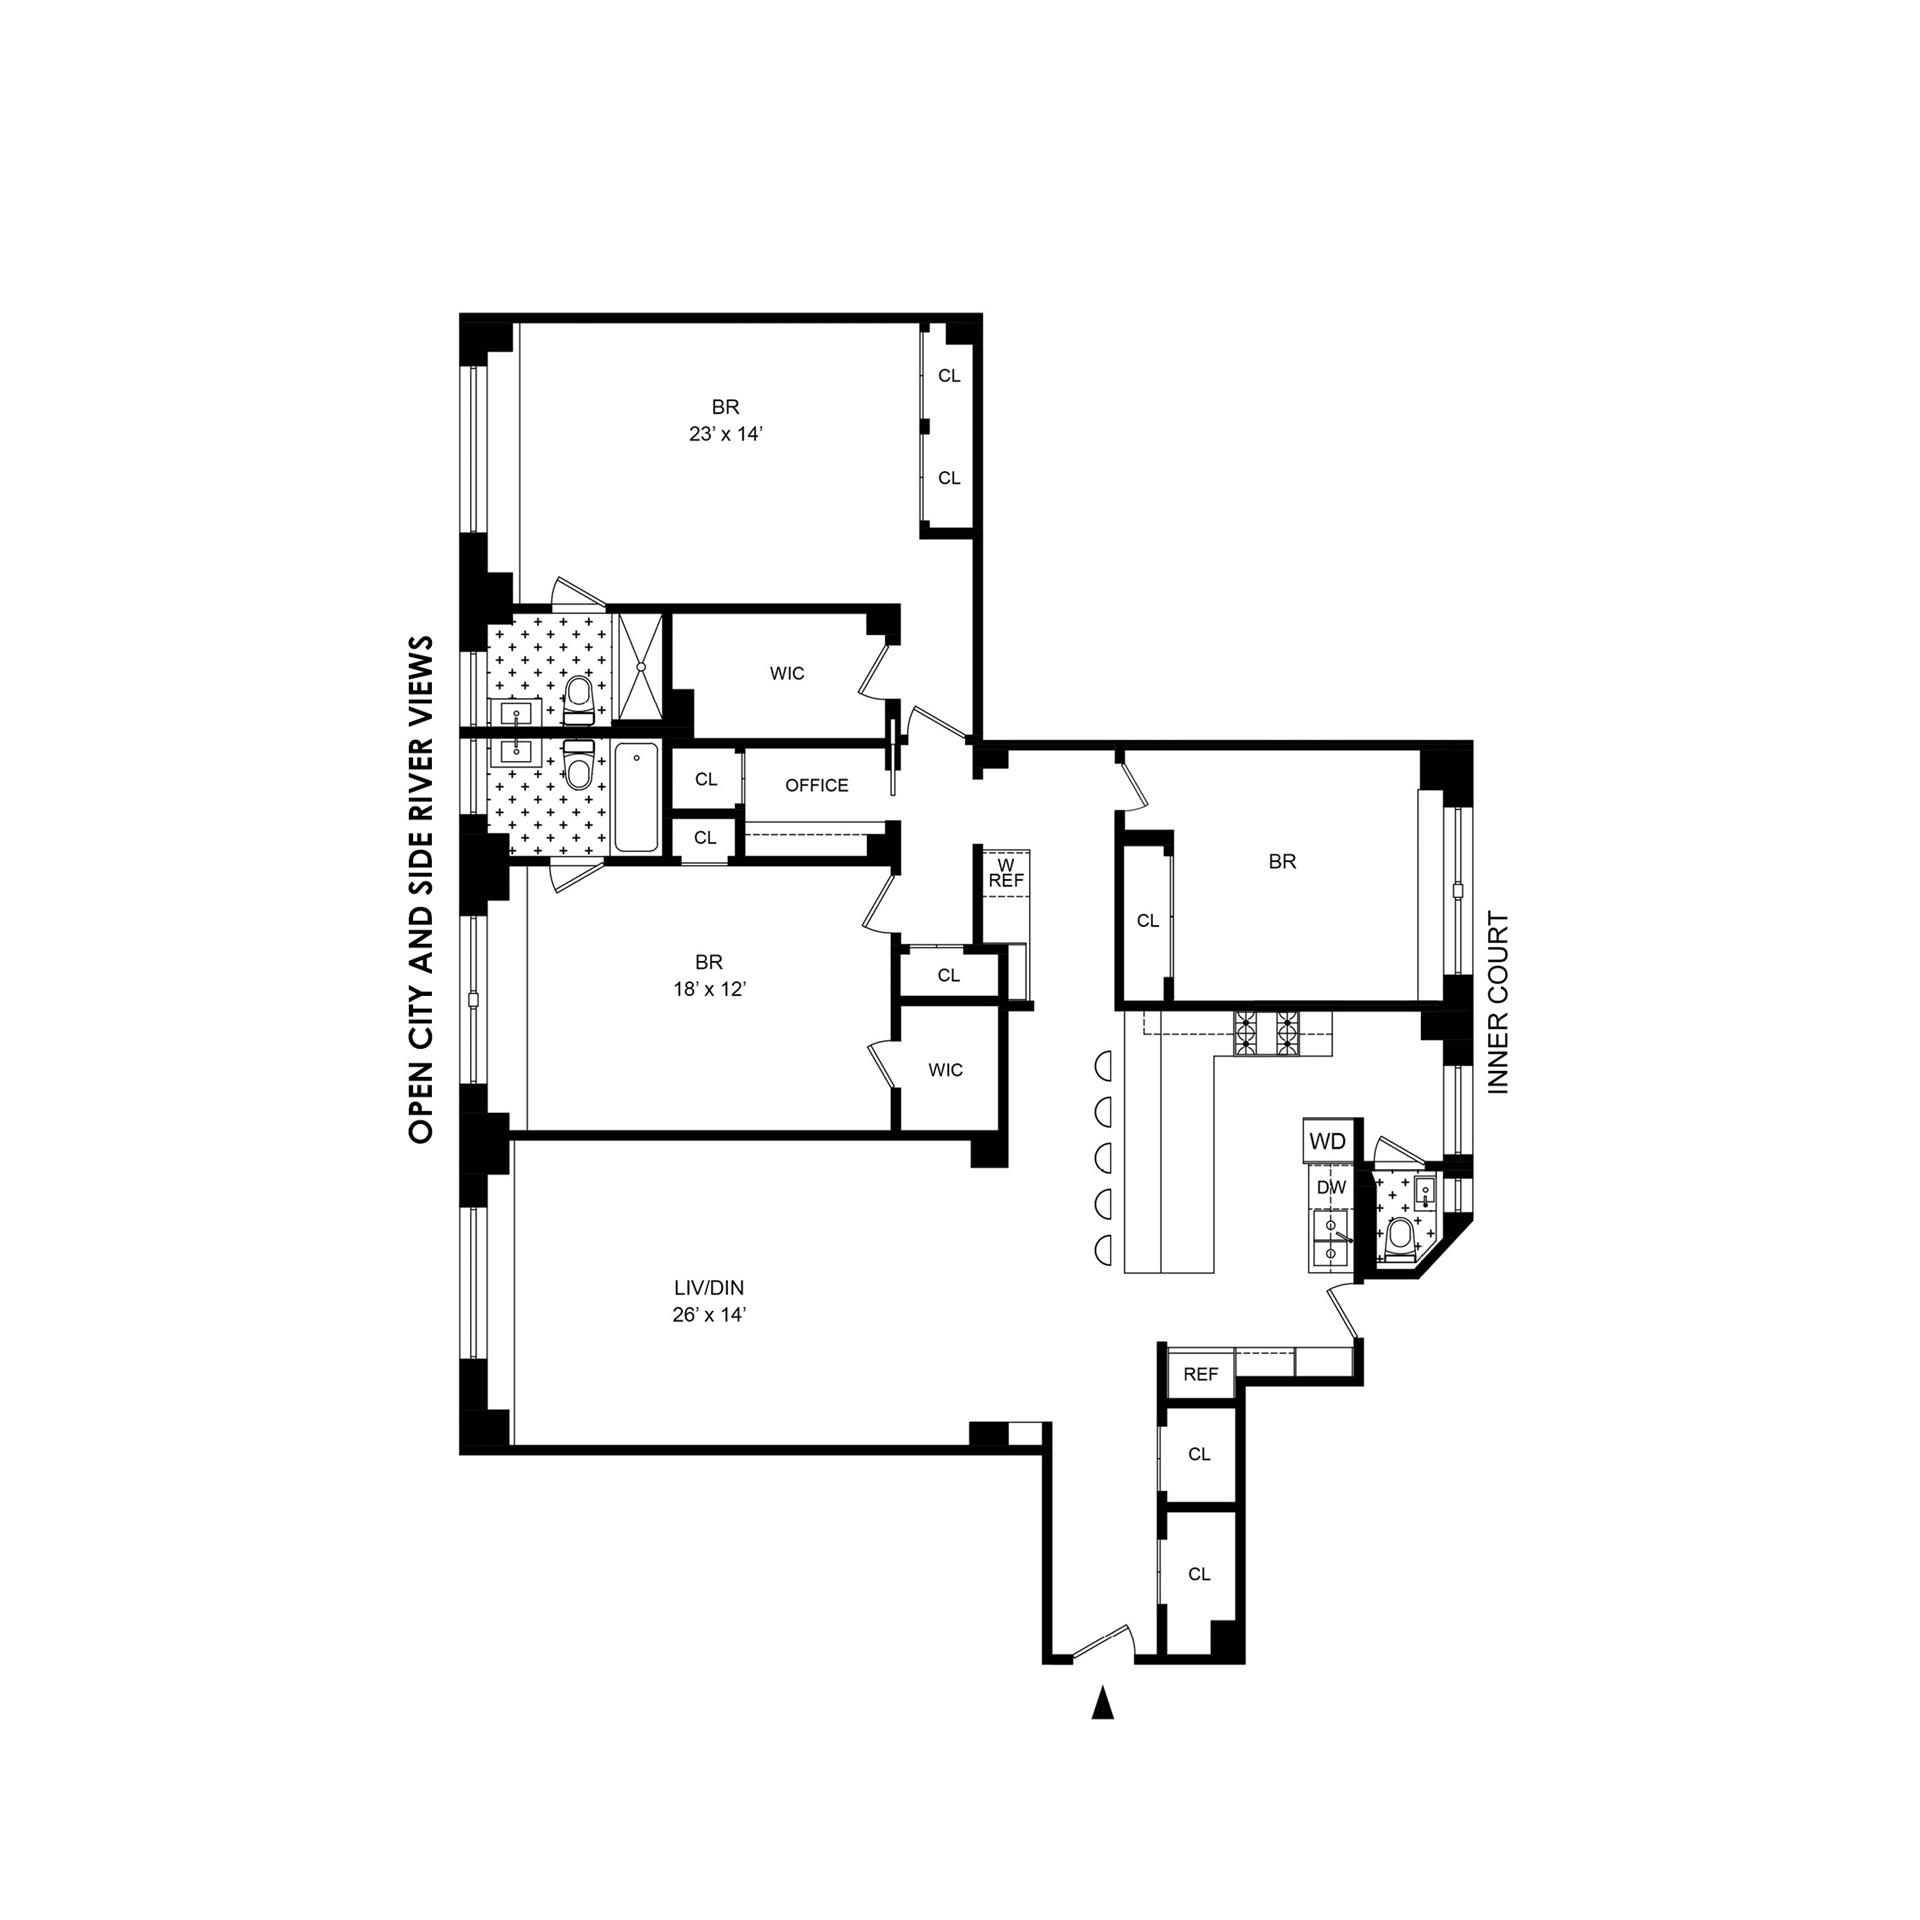 Floor plan of 50 Riverside Drive, 10C - Upper West Side, New York